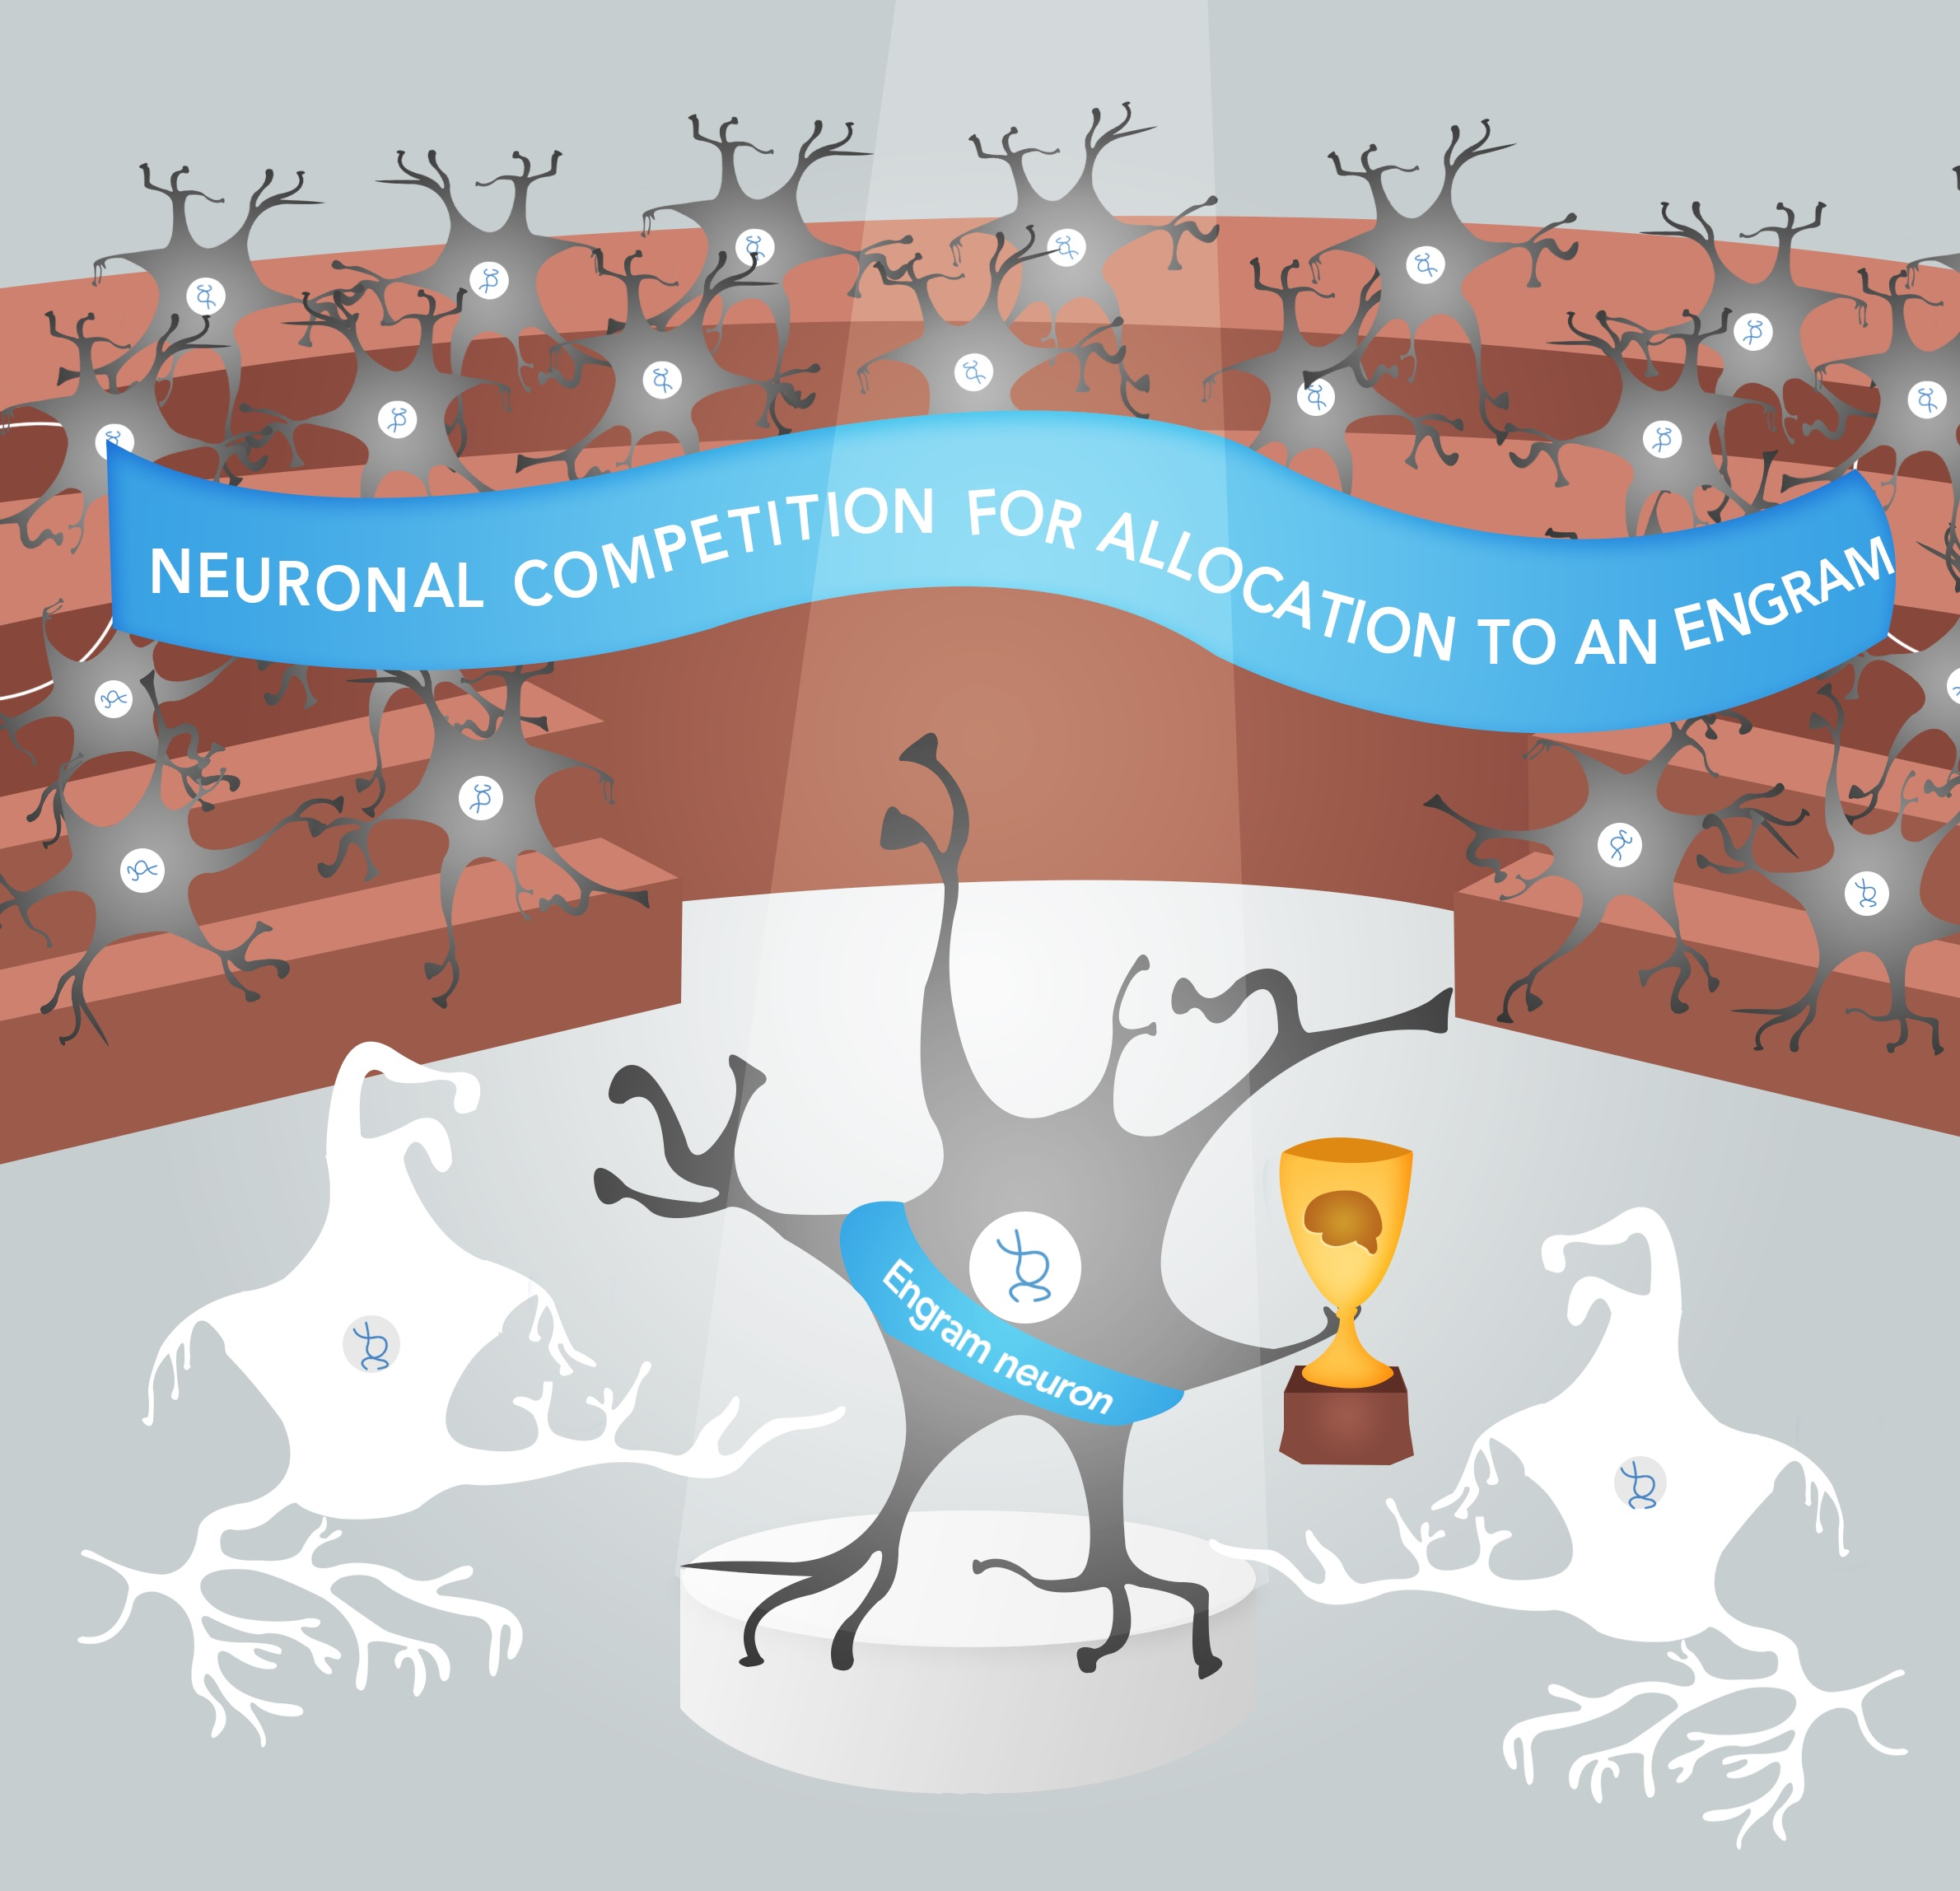 Neuronal competition for allocation to engram